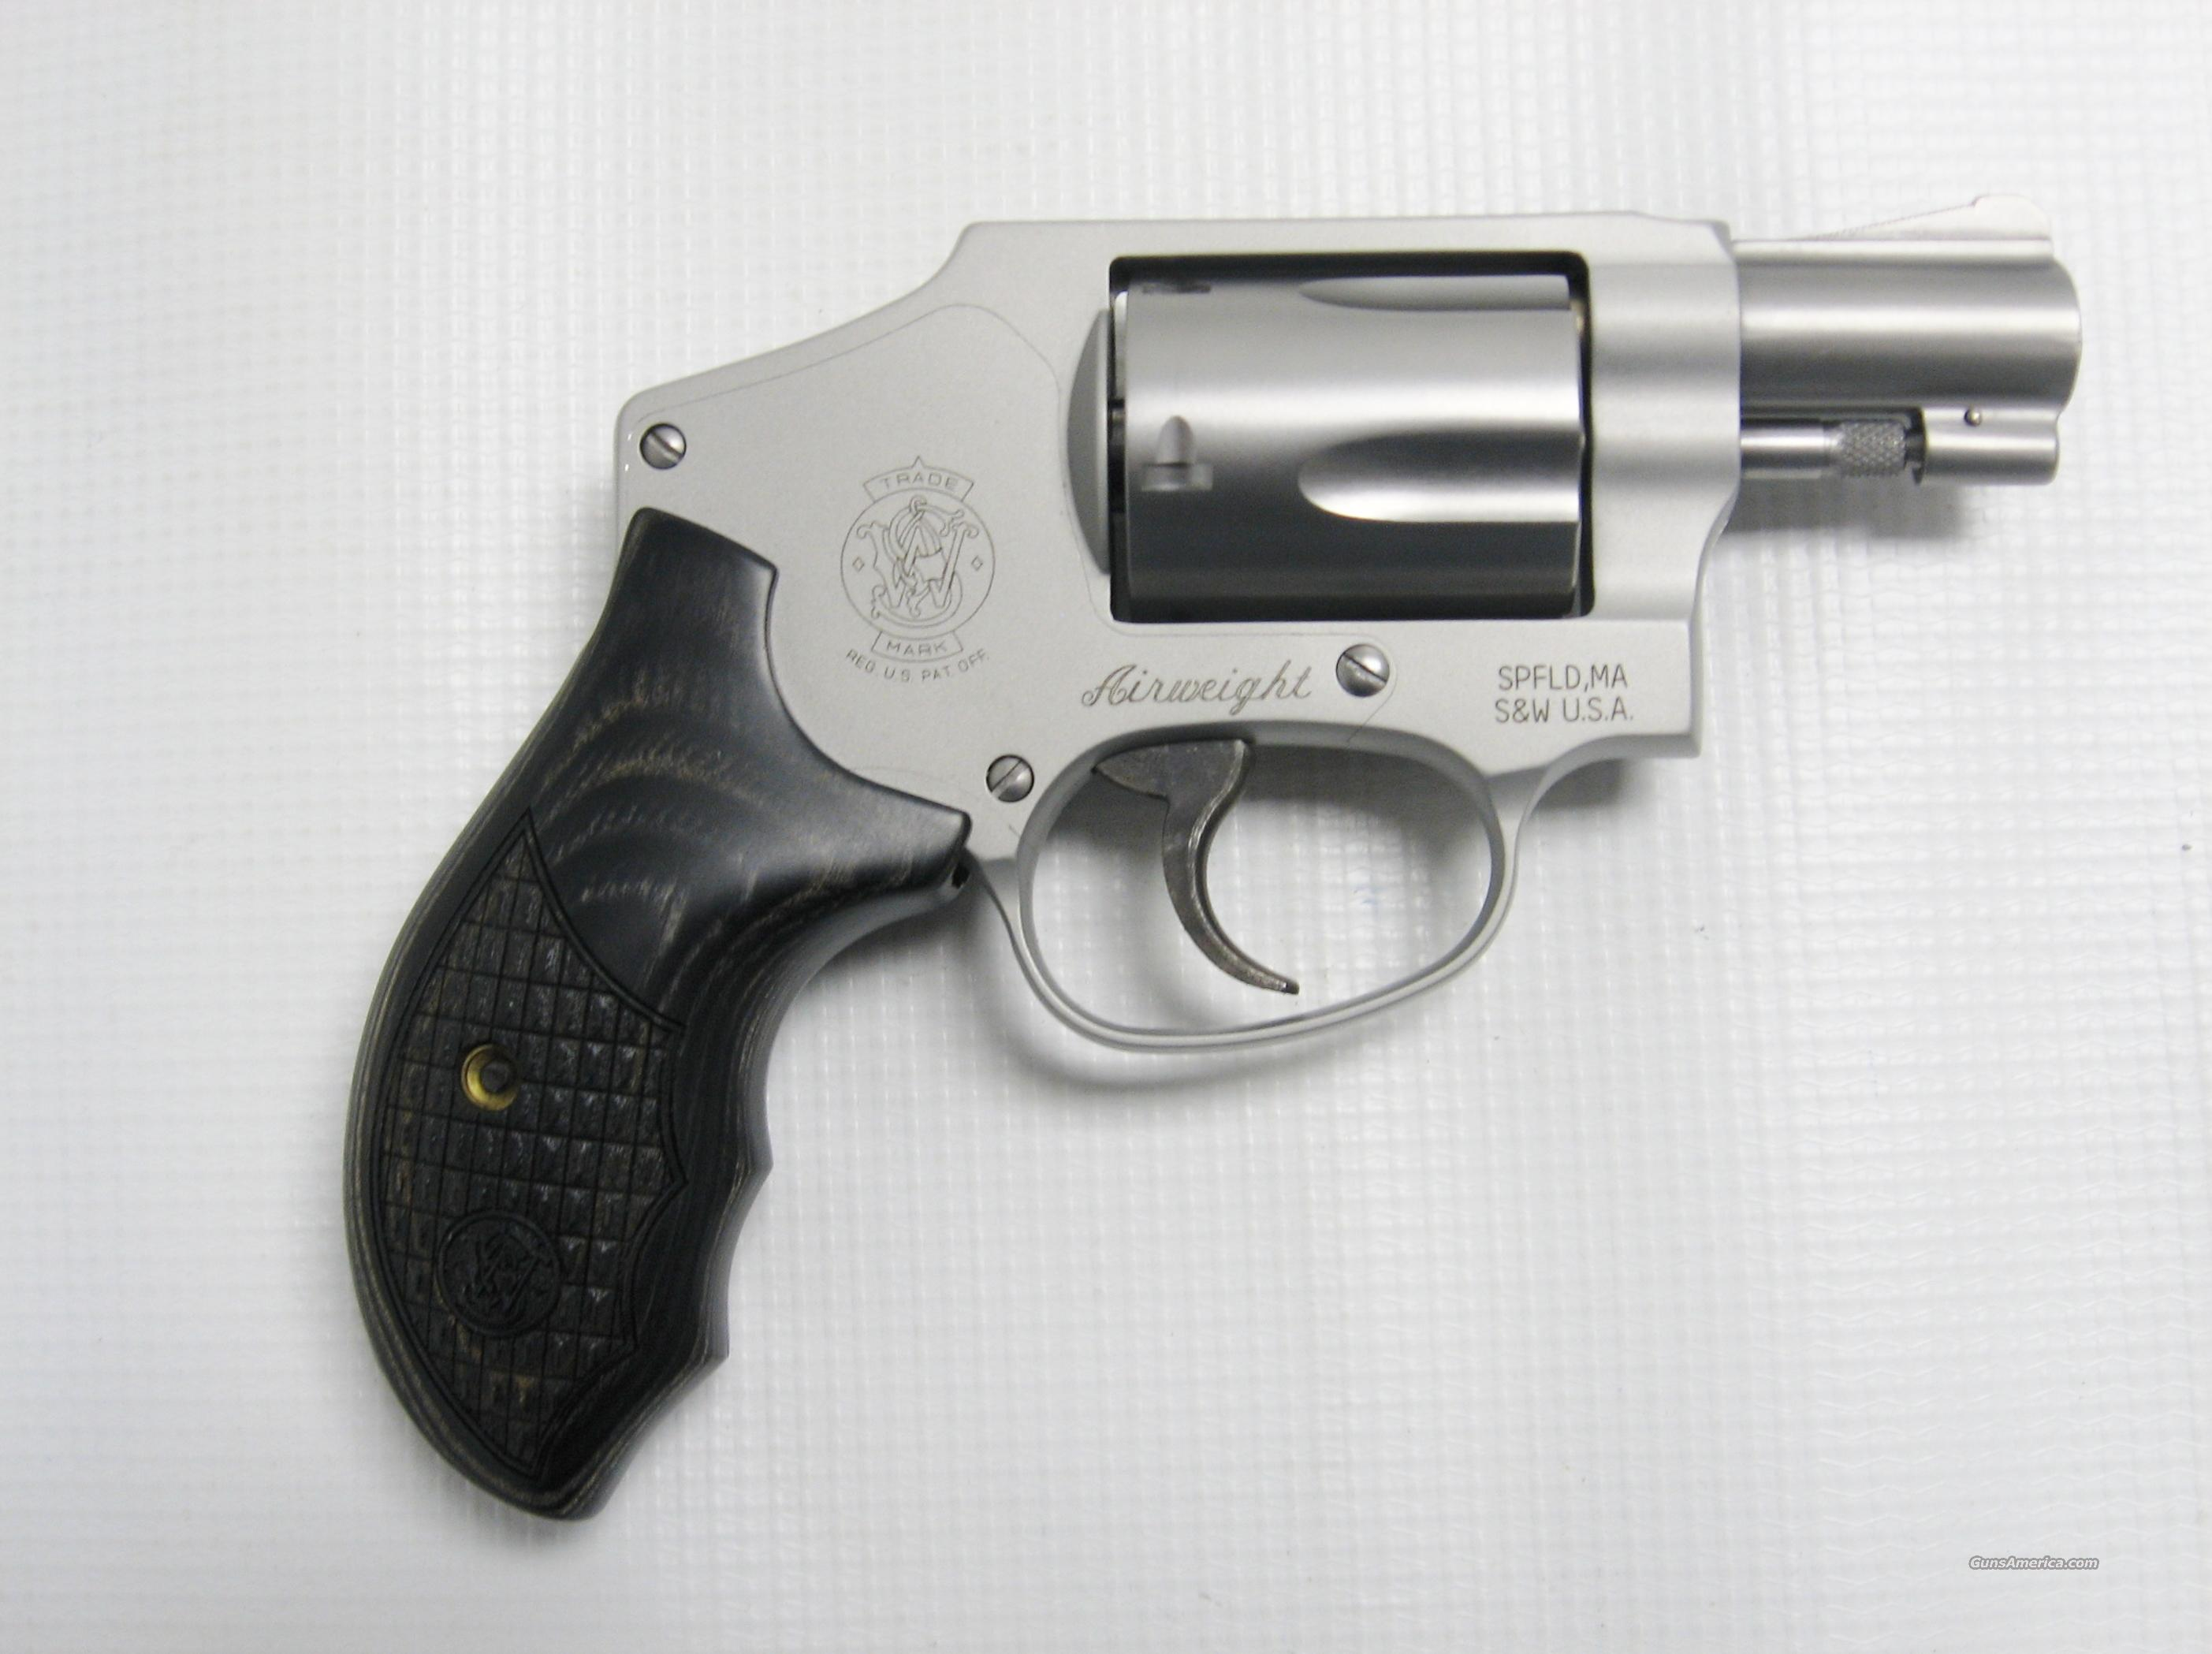 Smith & Wesson 642-2 Deluxe  Guns > Pistols > Smith & Wesson Revolvers > Pocket Pistols